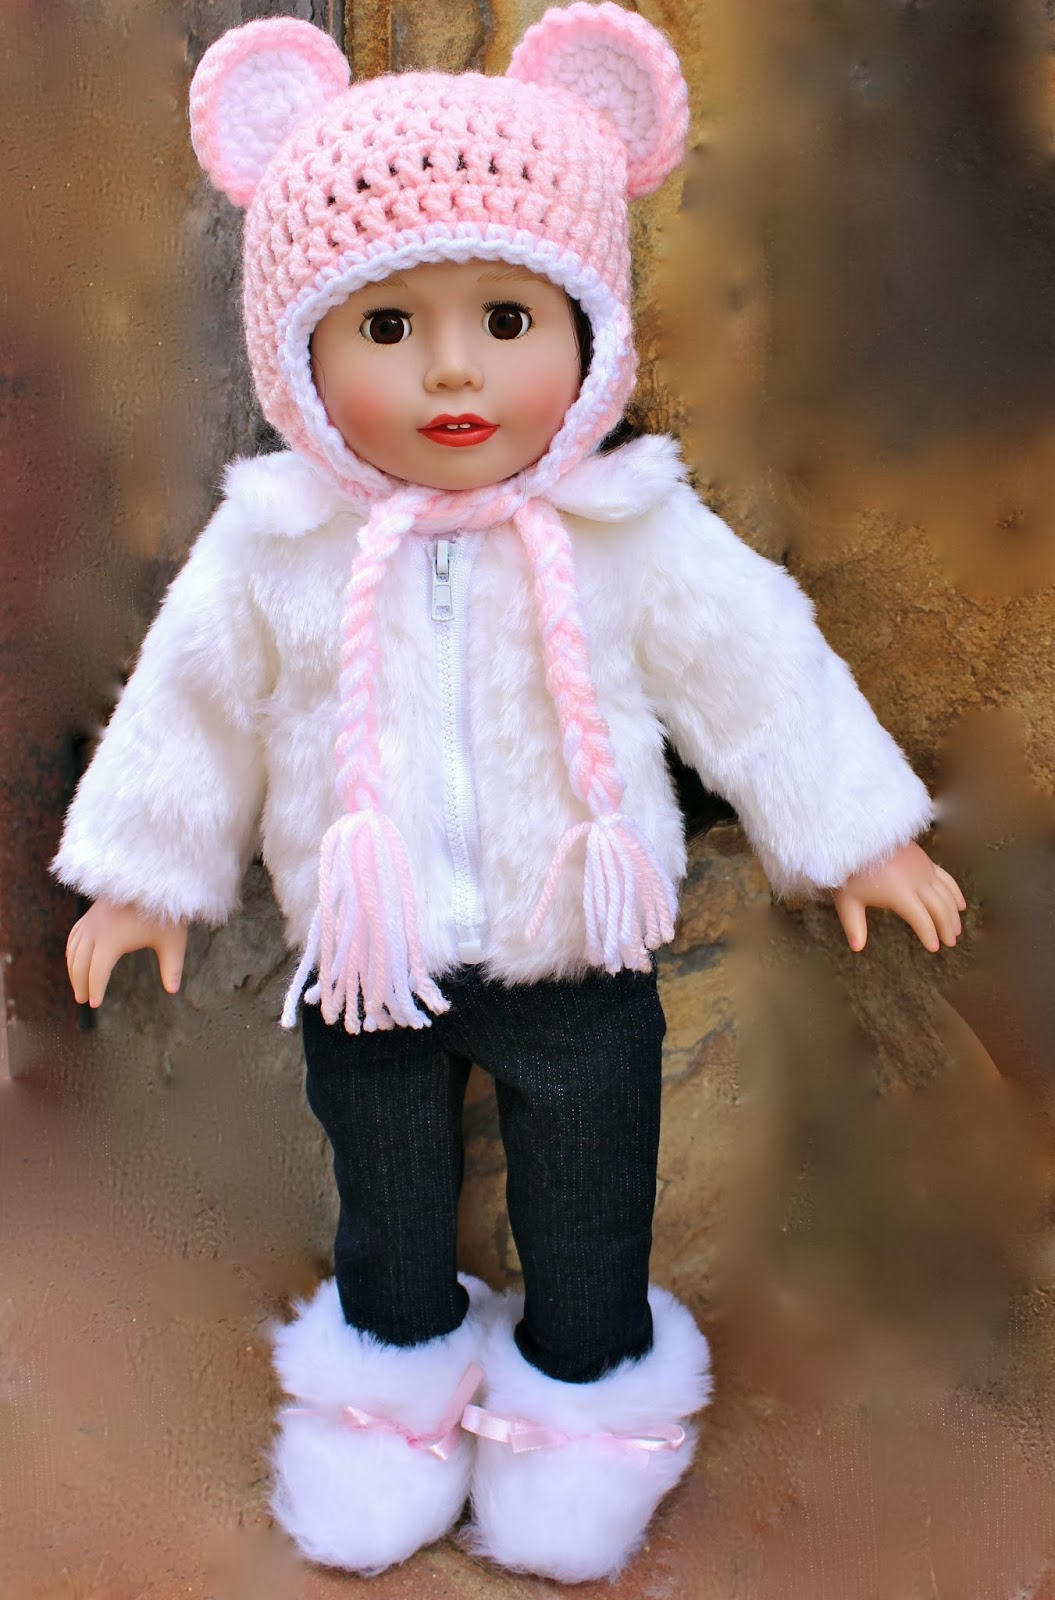 Shop Our 18 inch Doll Store Now with Fashion Outfits for 18 inch Dolls and American Girl